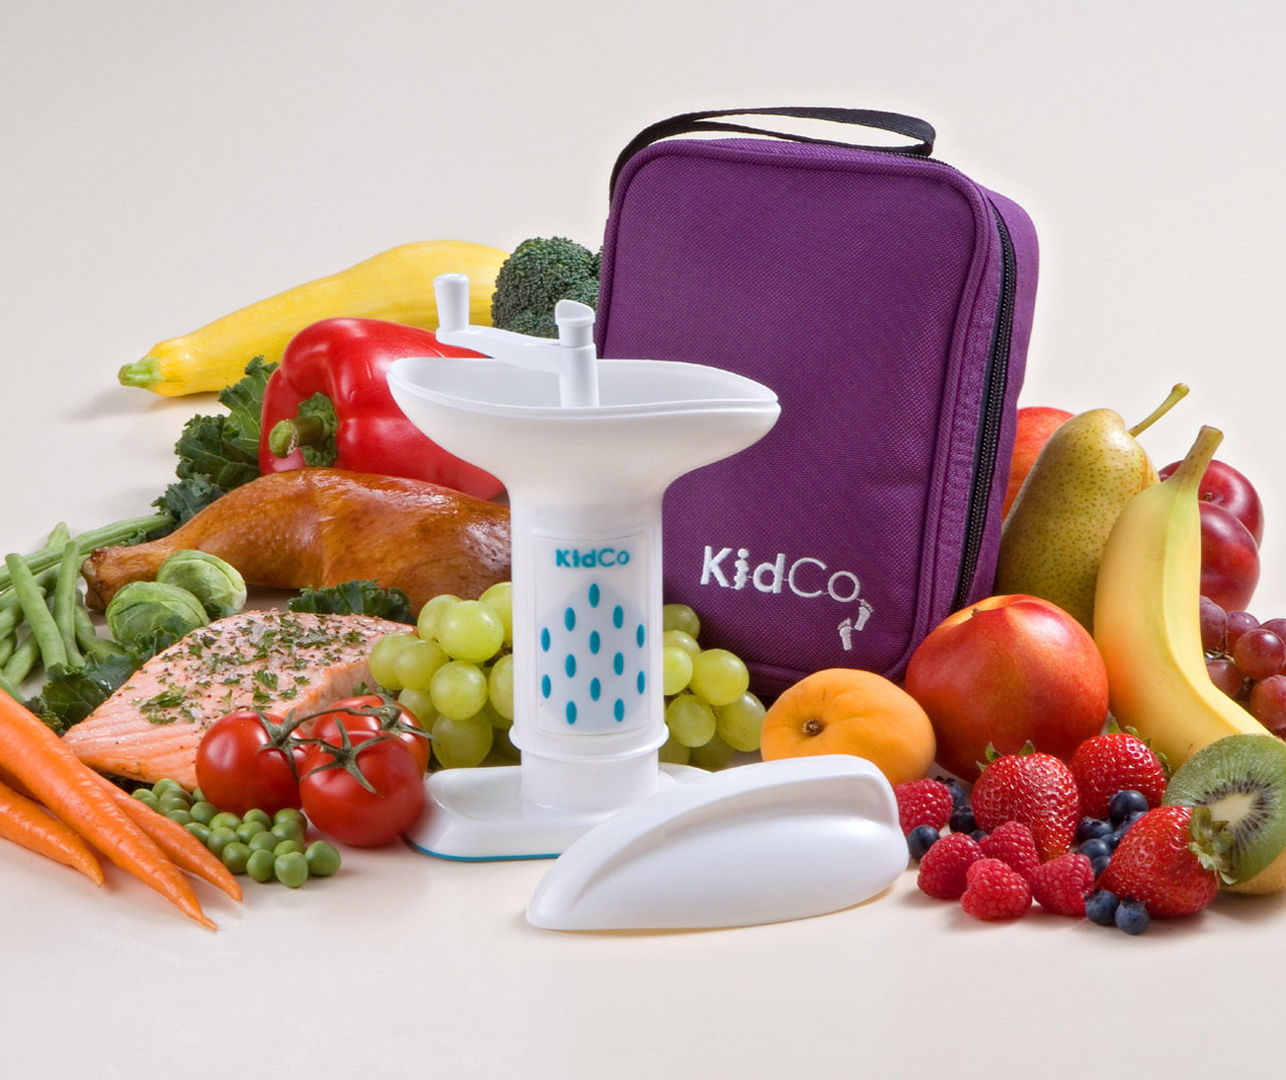 KidCo Baby Food Blender.jpg